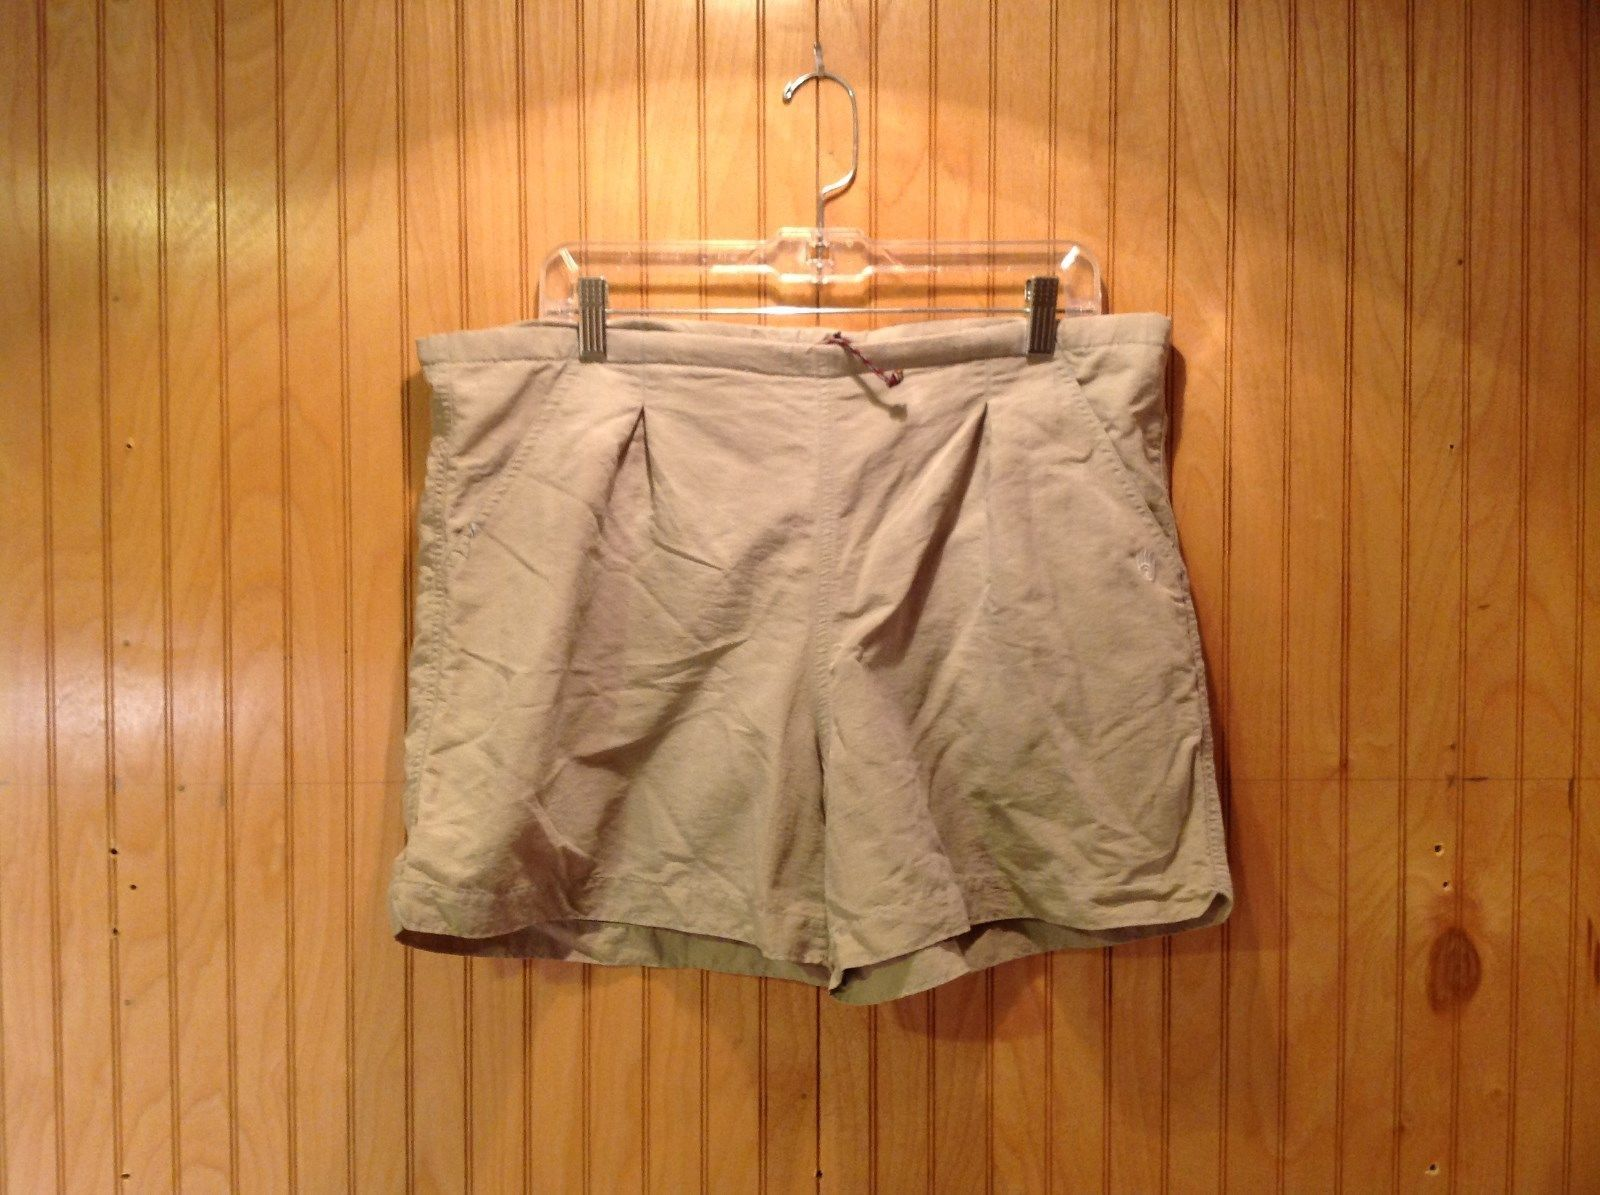 Khaki Athletic Shorts Adjustable Waist Netting Inside Pockets Measurements Below